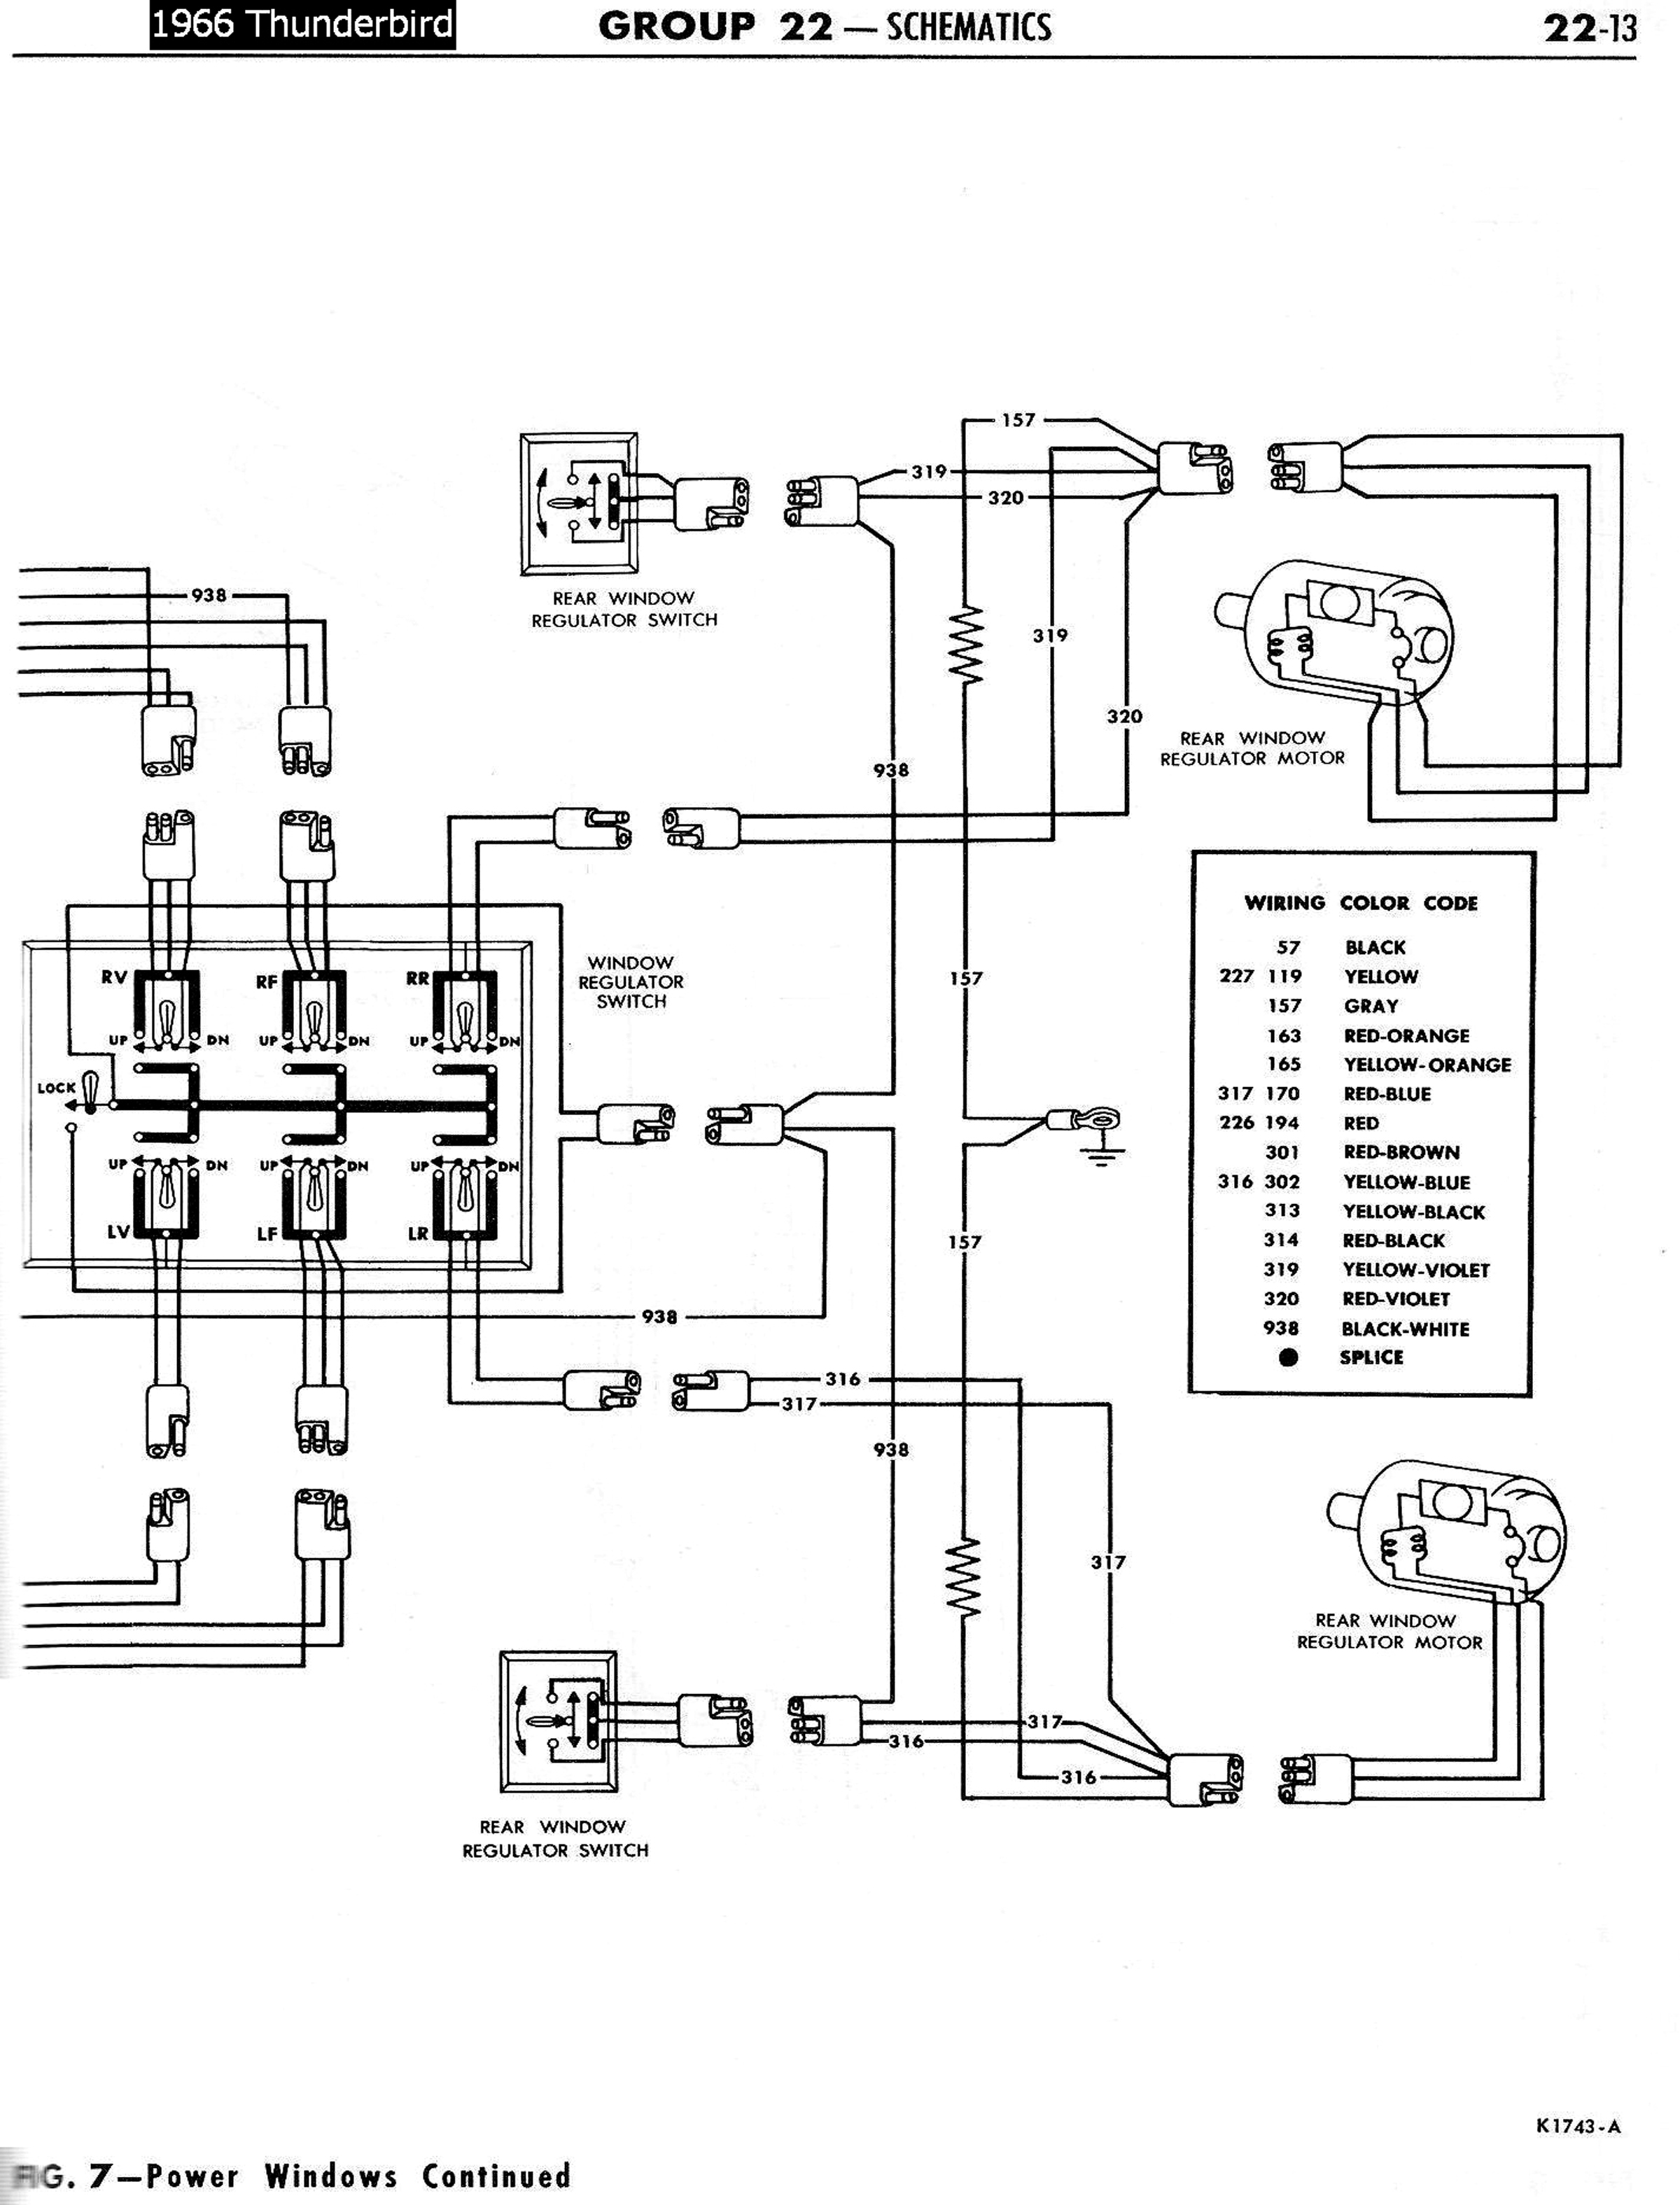 1970 Chevelle Wiring Diagram In Addition For Third 1969 Mustang Radio Library 1968 Ford